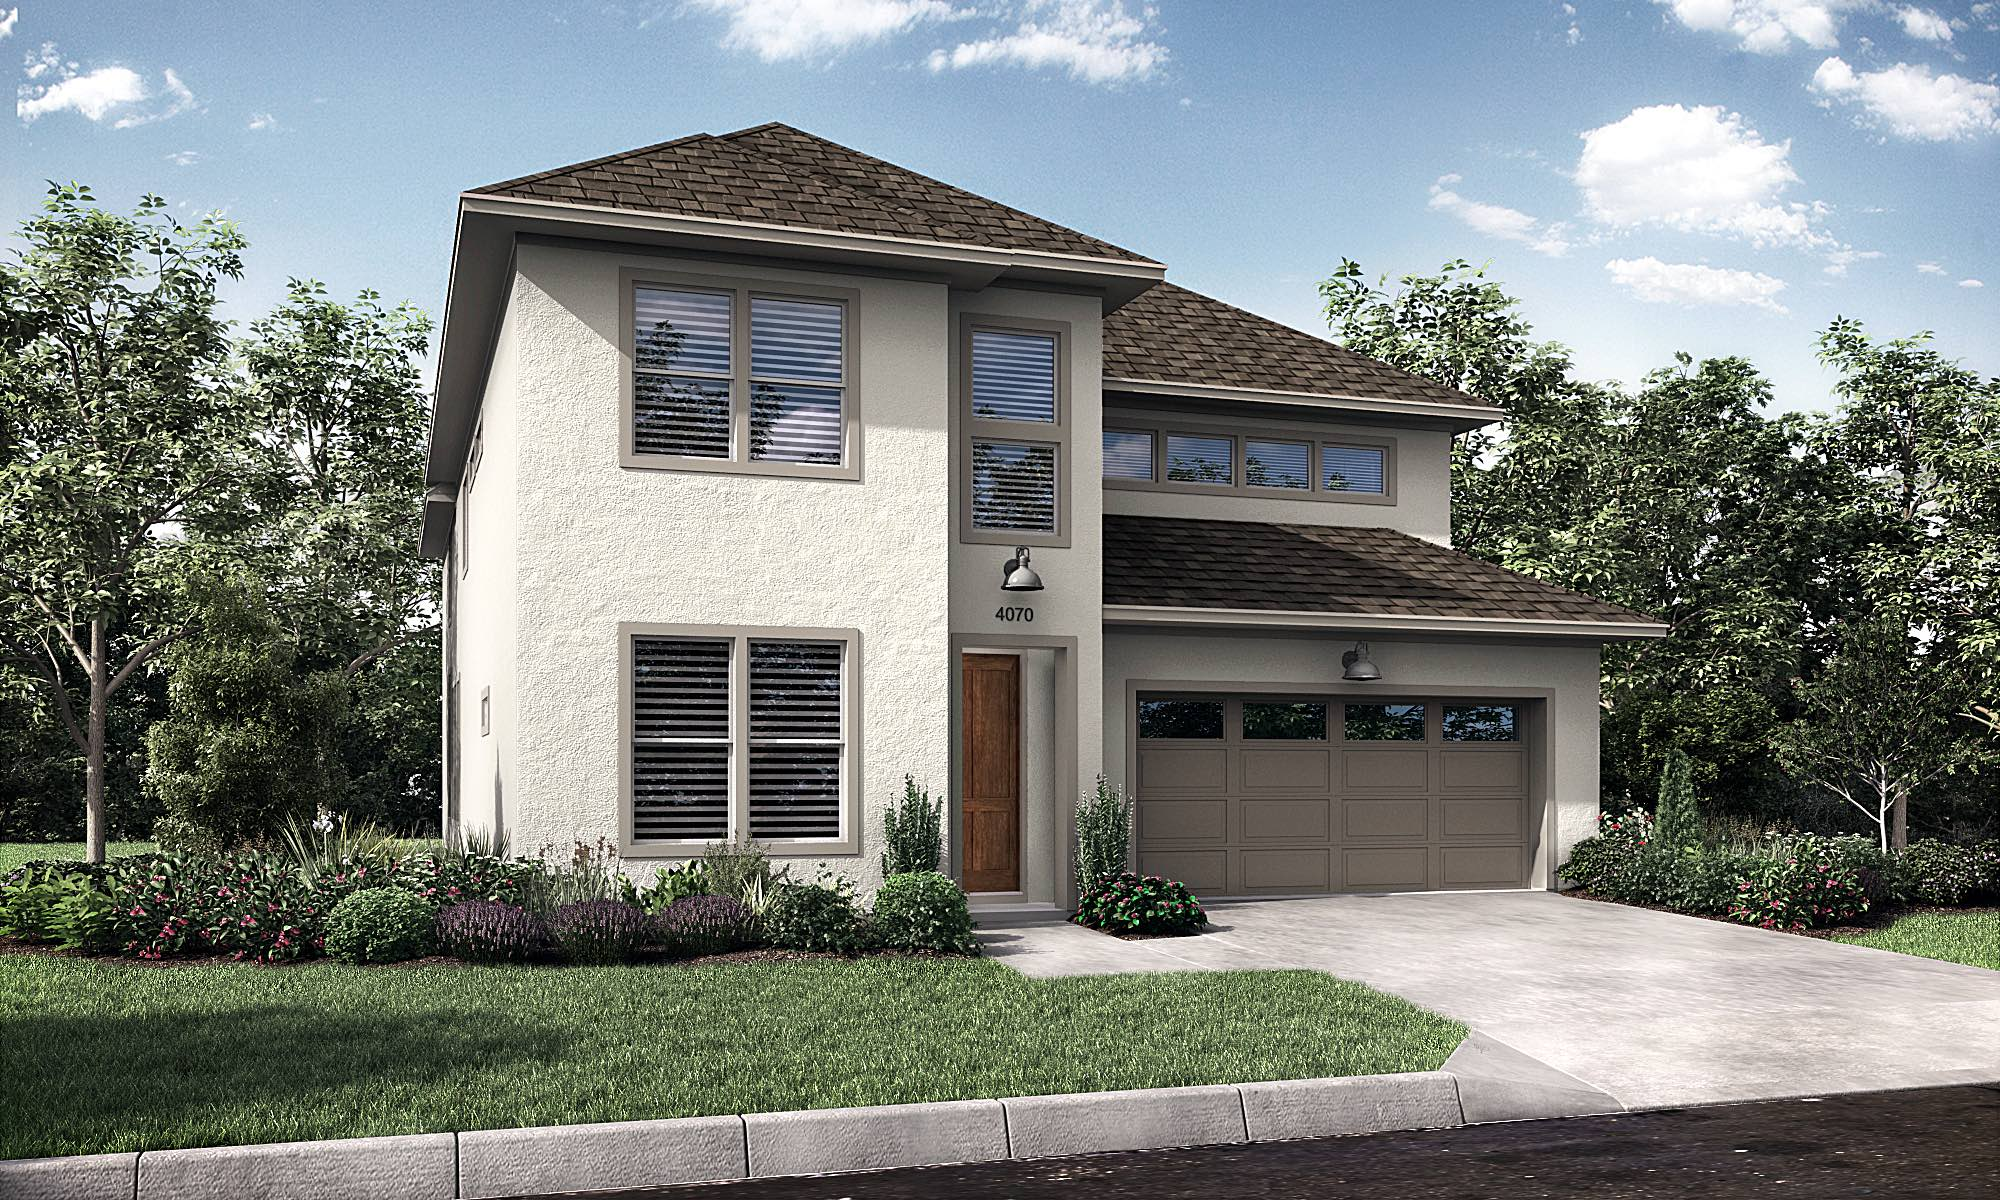 Stonegate Community In Irving Debuts Luxury Homes Costing 500k And